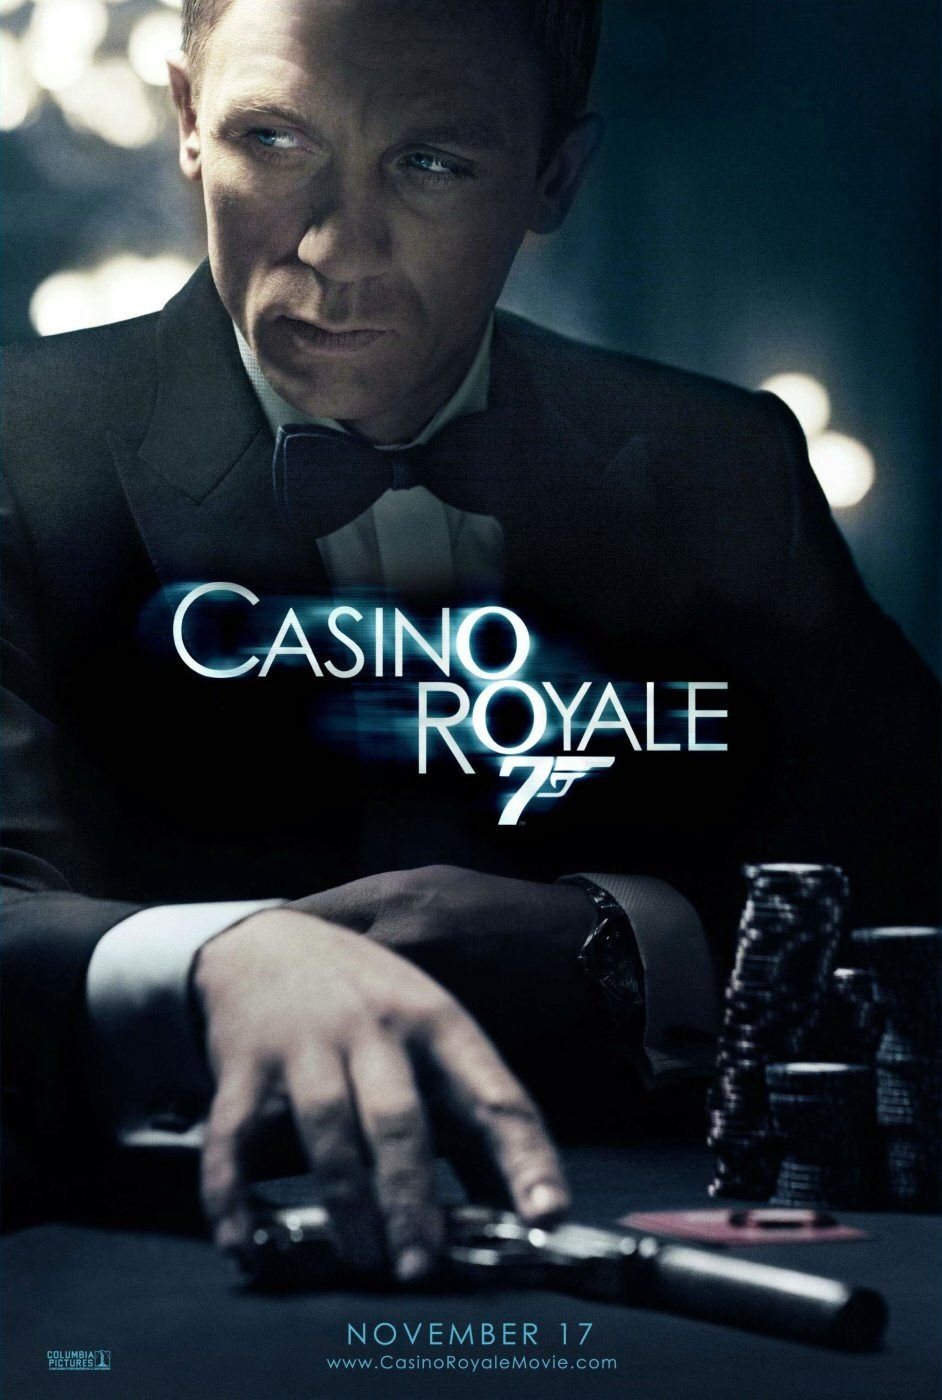 casino royale movie free download